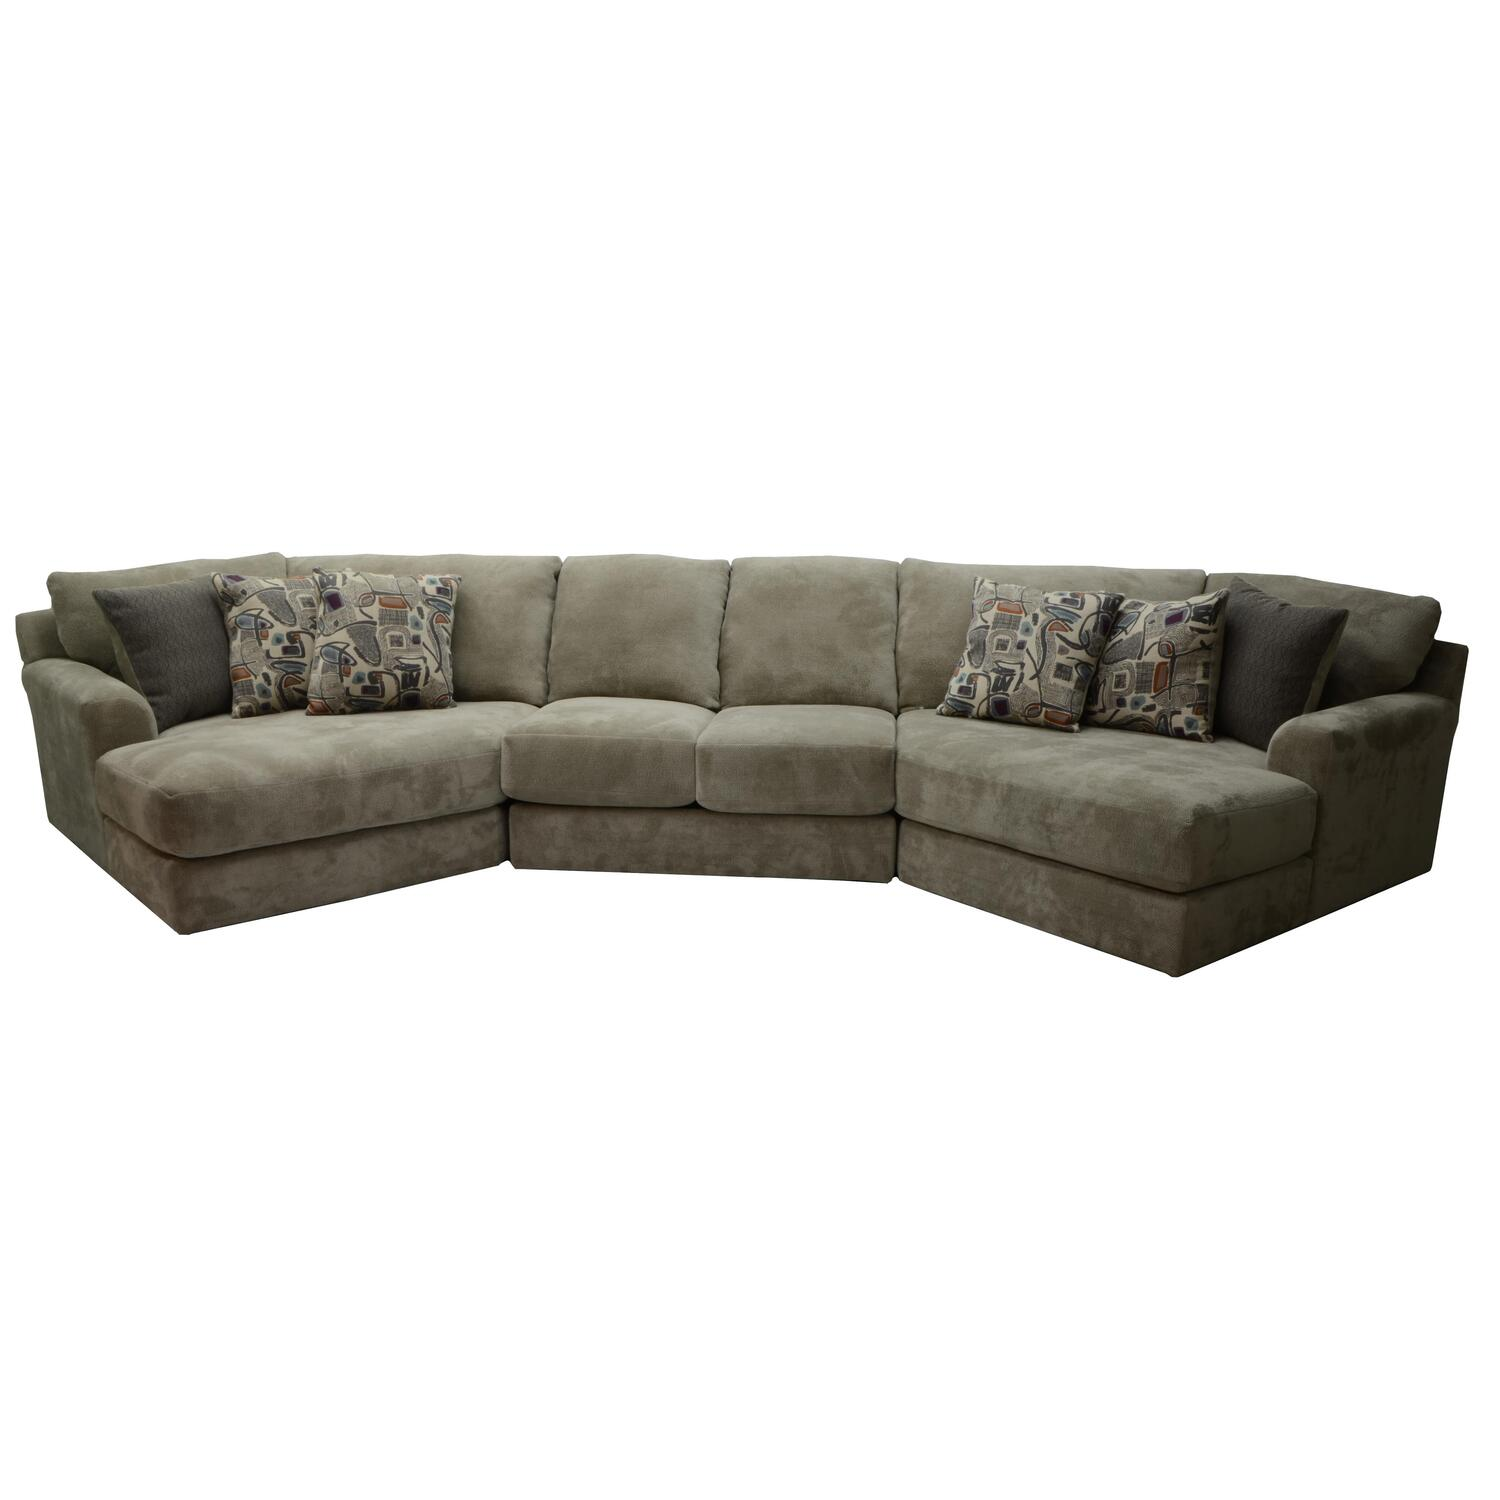 Jackson Furniture Malibu Small Piano Wedge Sectional By Oj Commerce 3239 92 29 96 1983 36